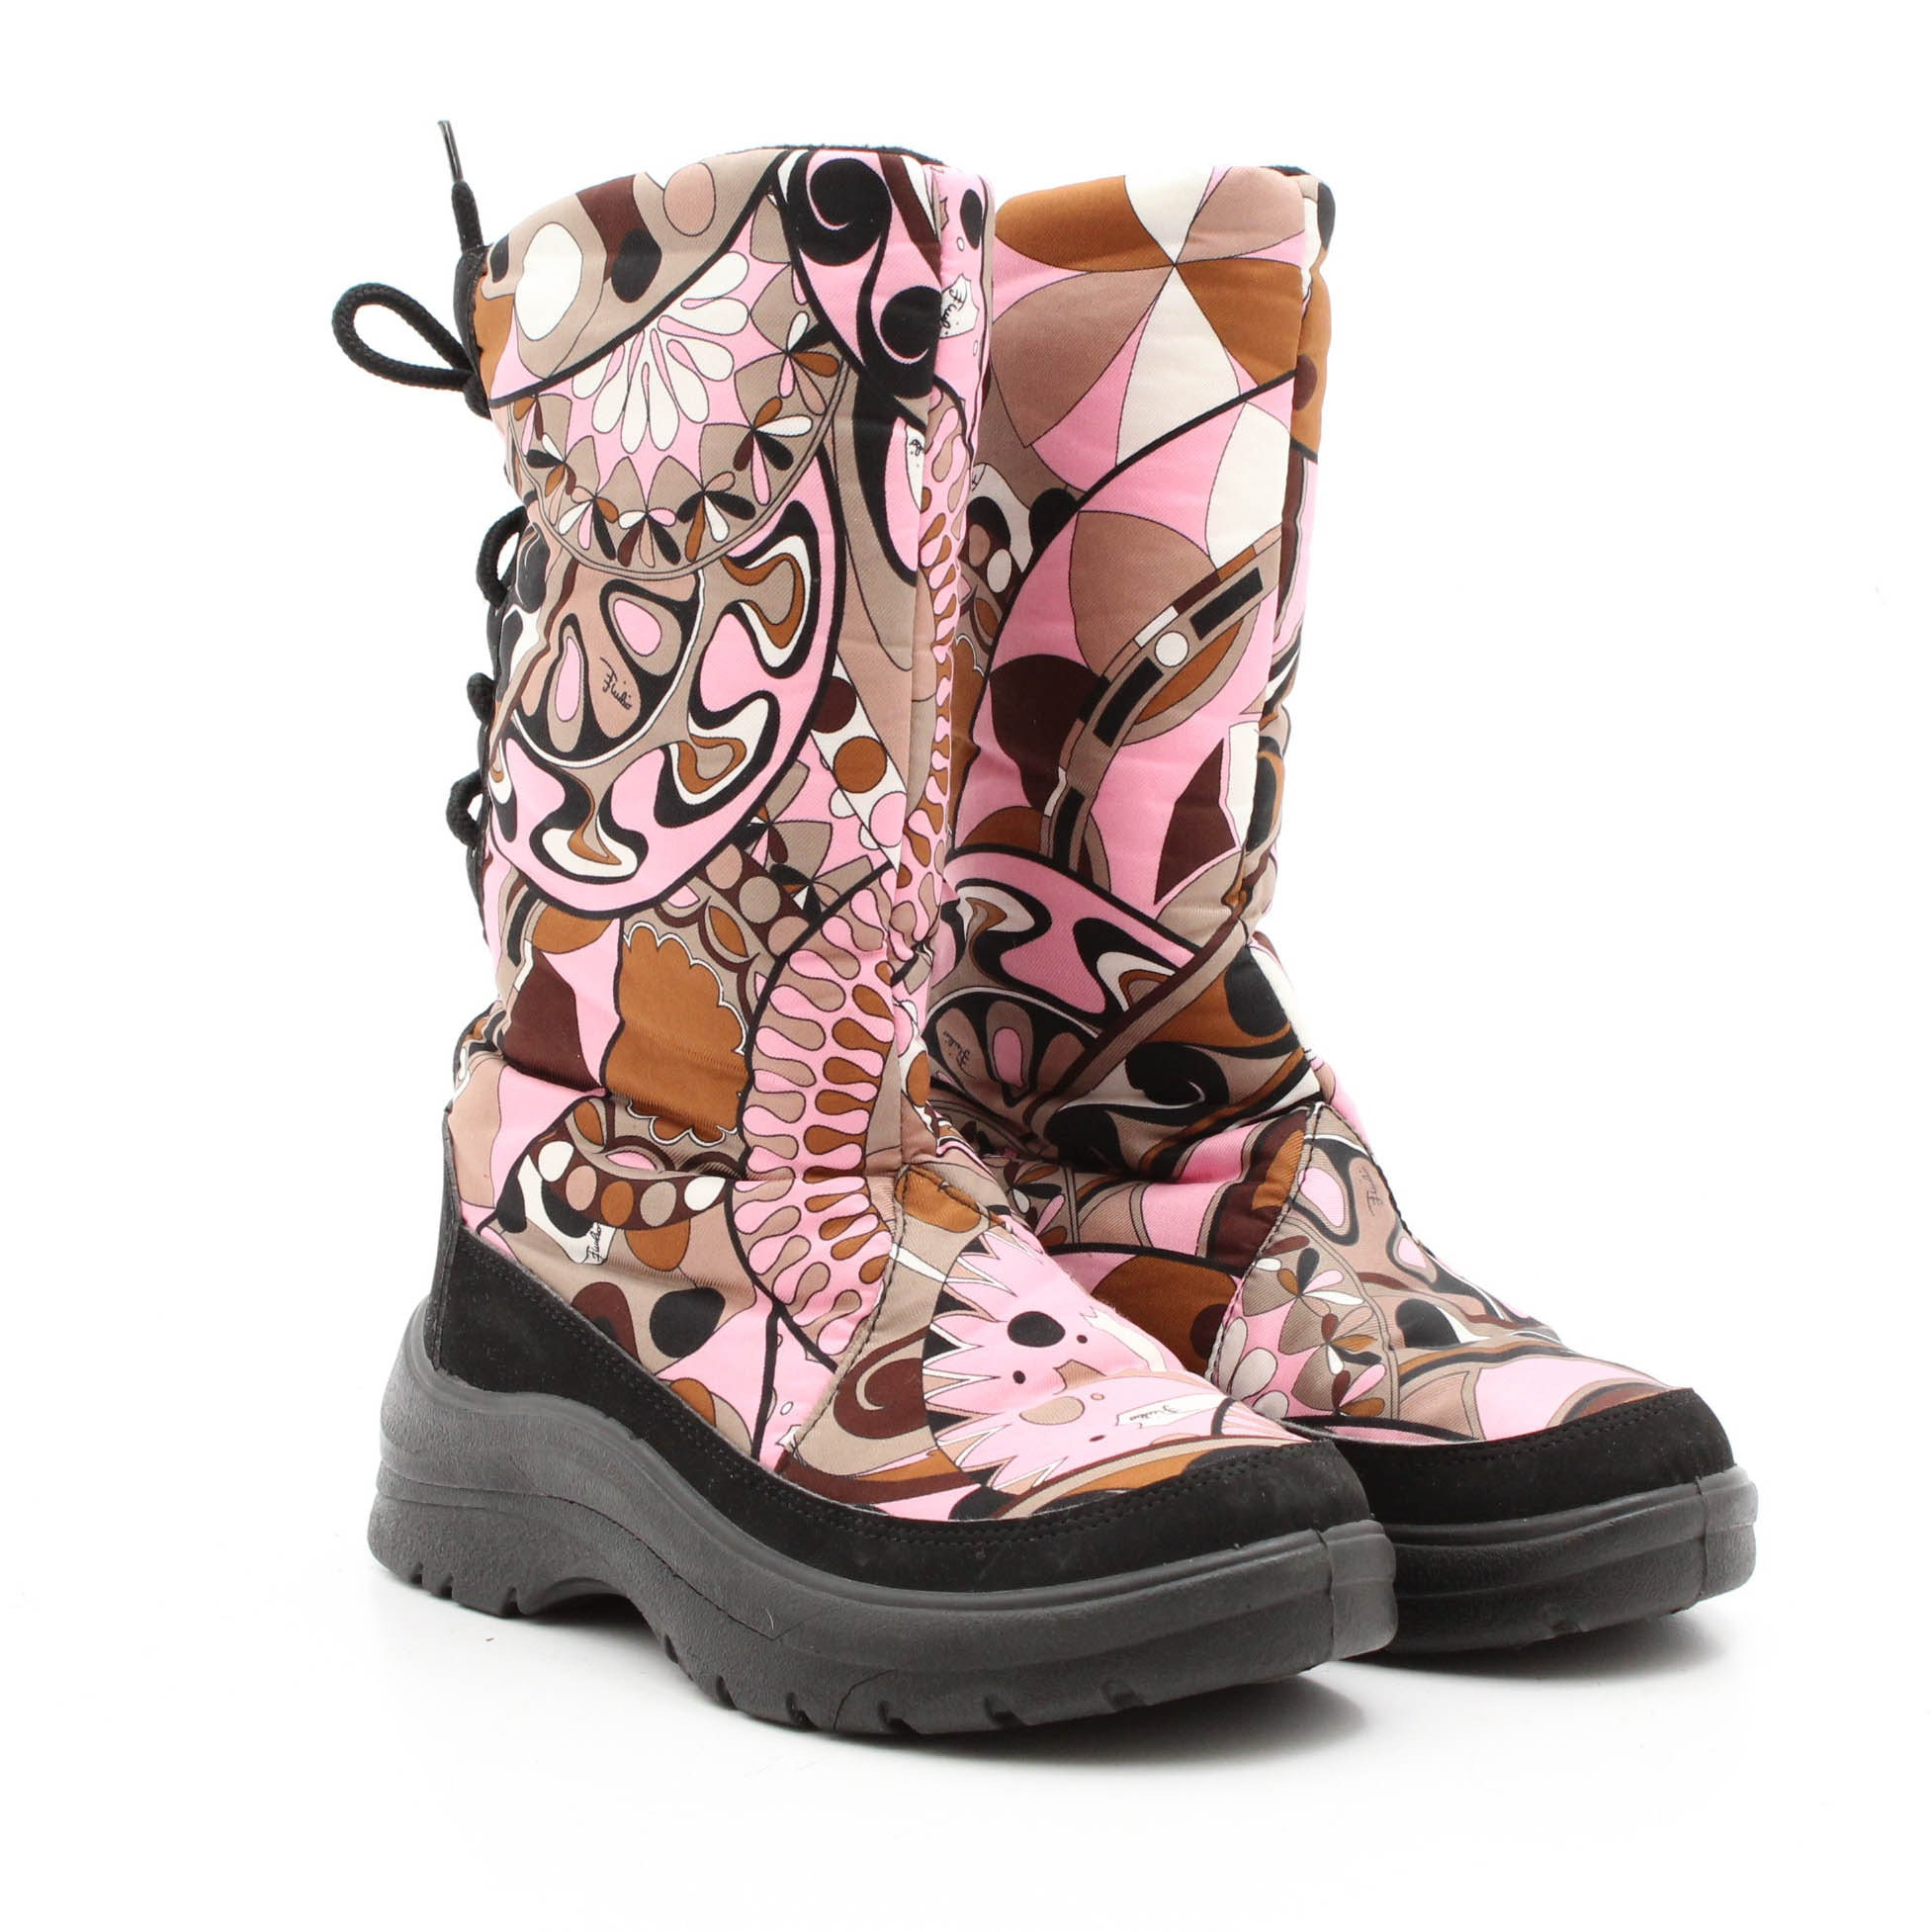 Emilio Pucci Boots with Lace-Ups